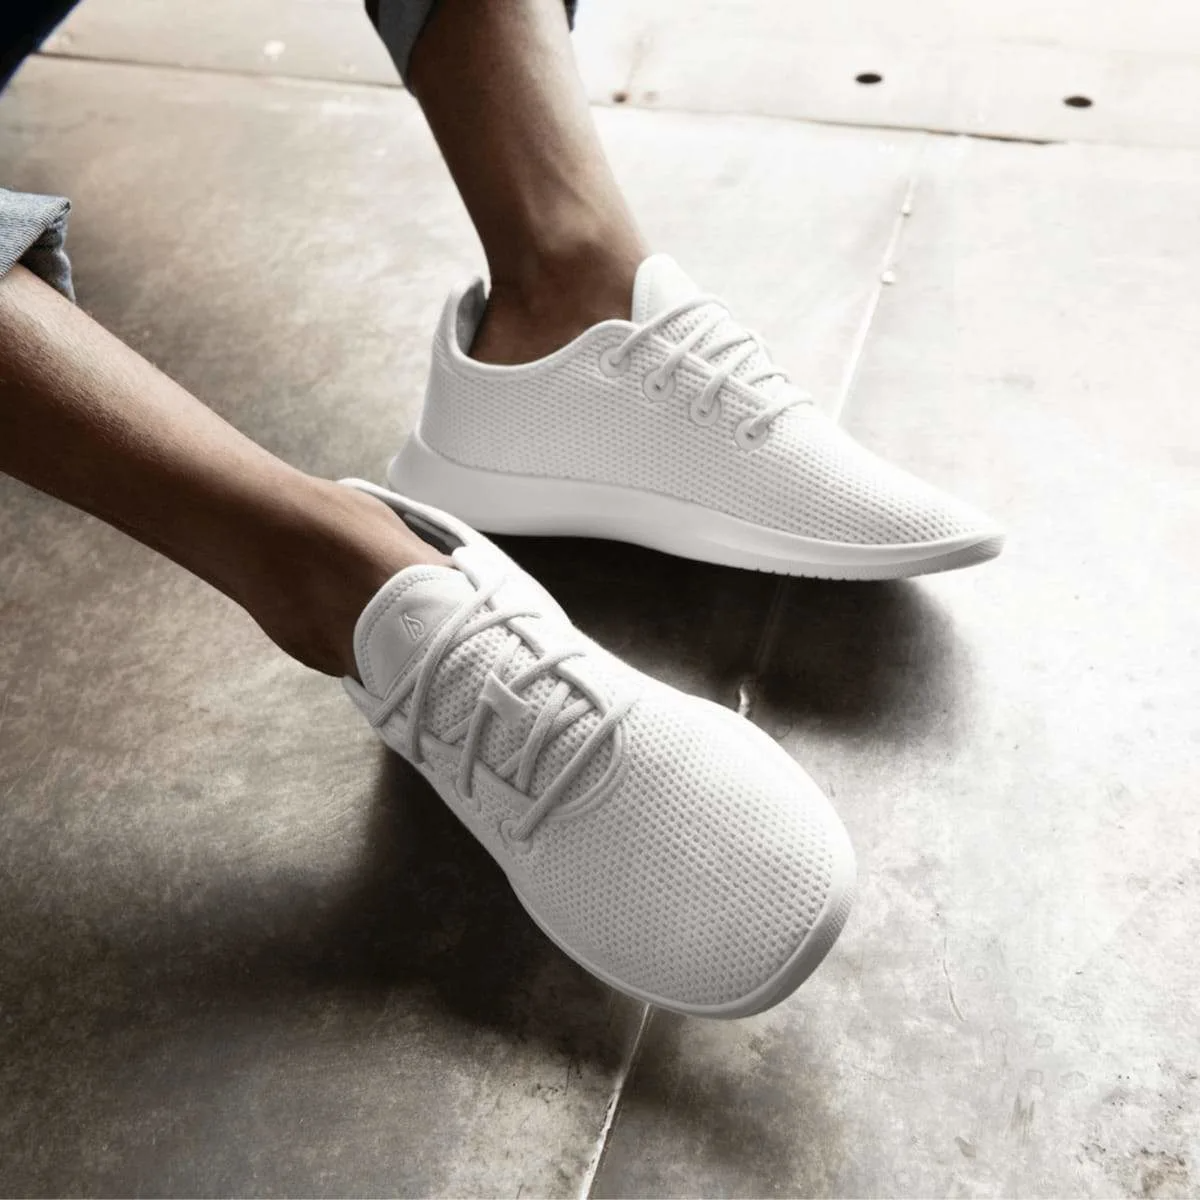 The shoes in white on feet